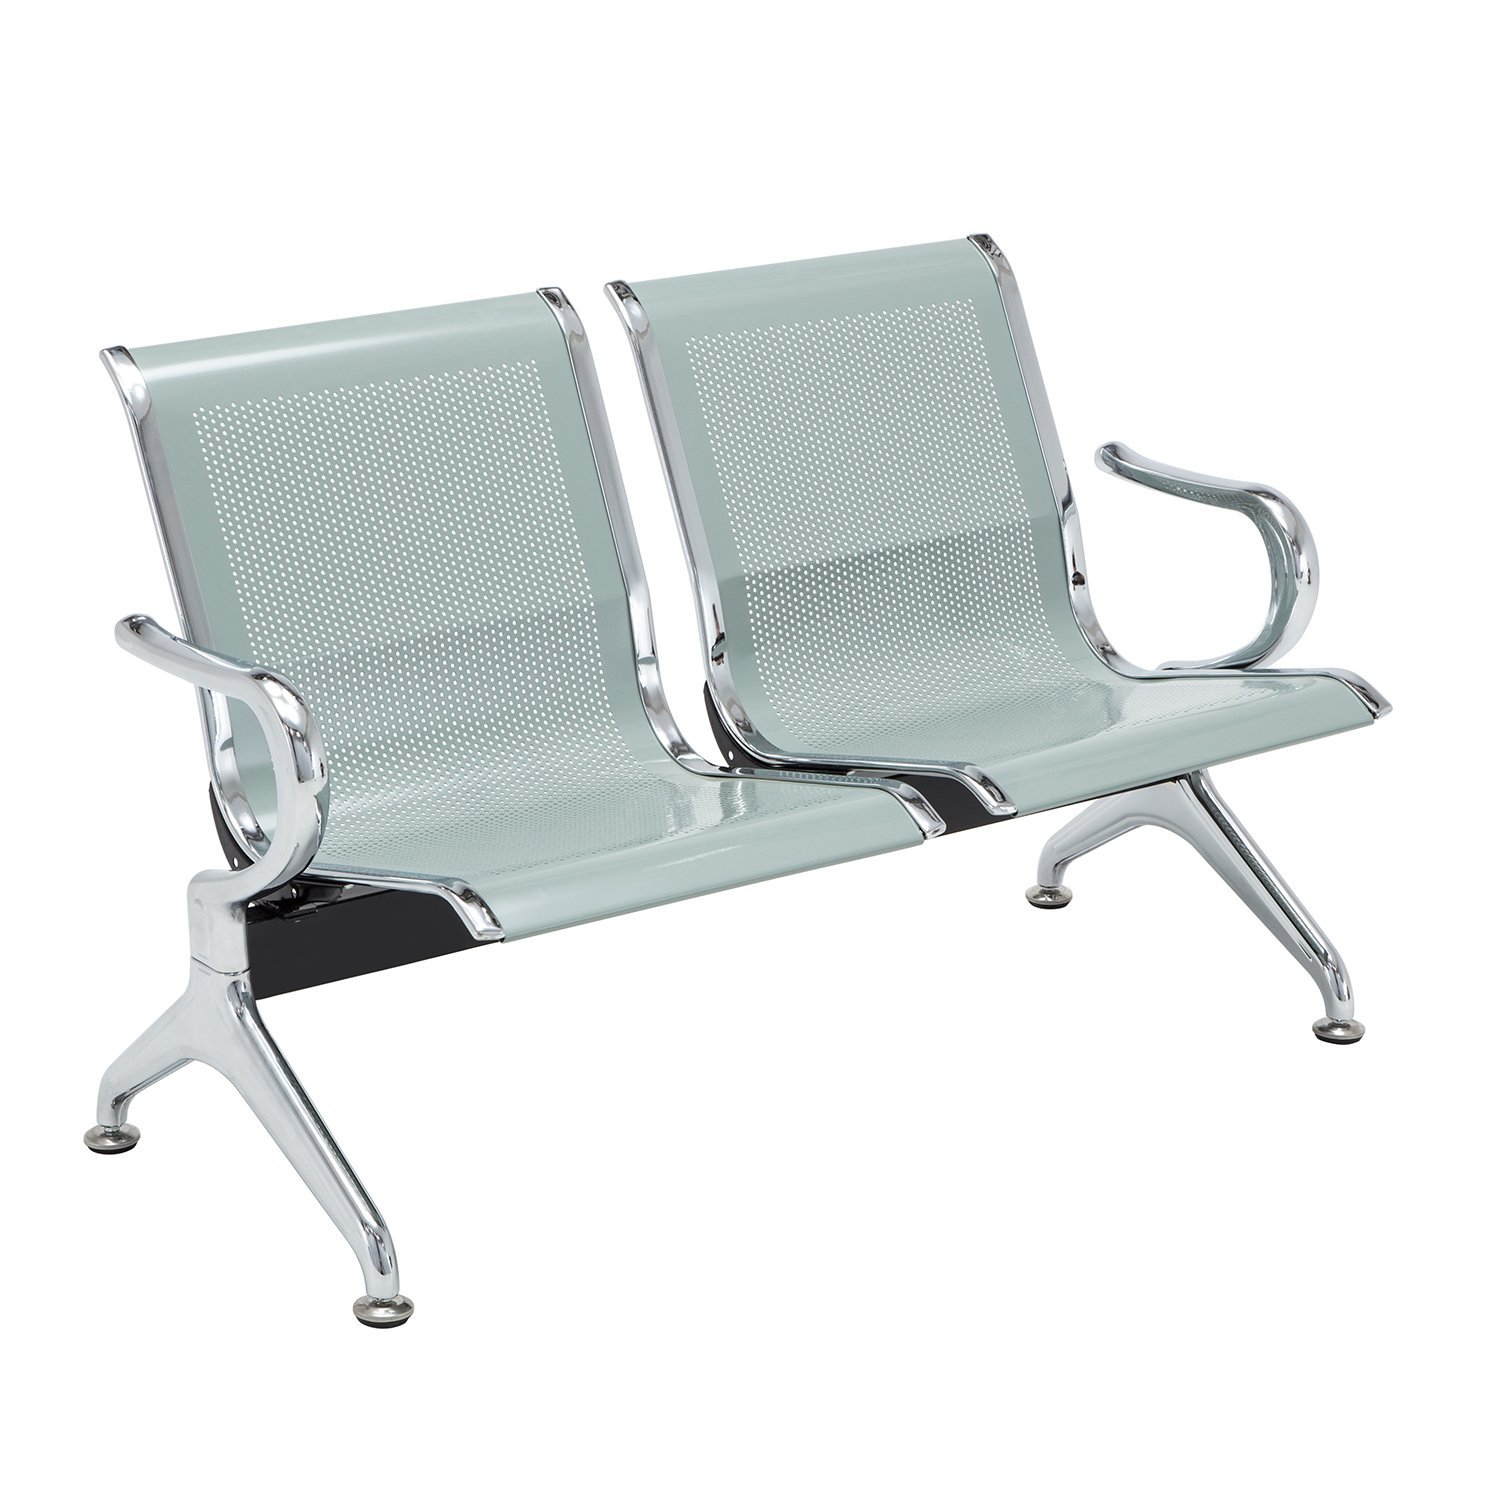 Admirable Cheap Airport Chair Price Find Airport Chair Price Deals On Short Links Chair Design For Home Short Linksinfo